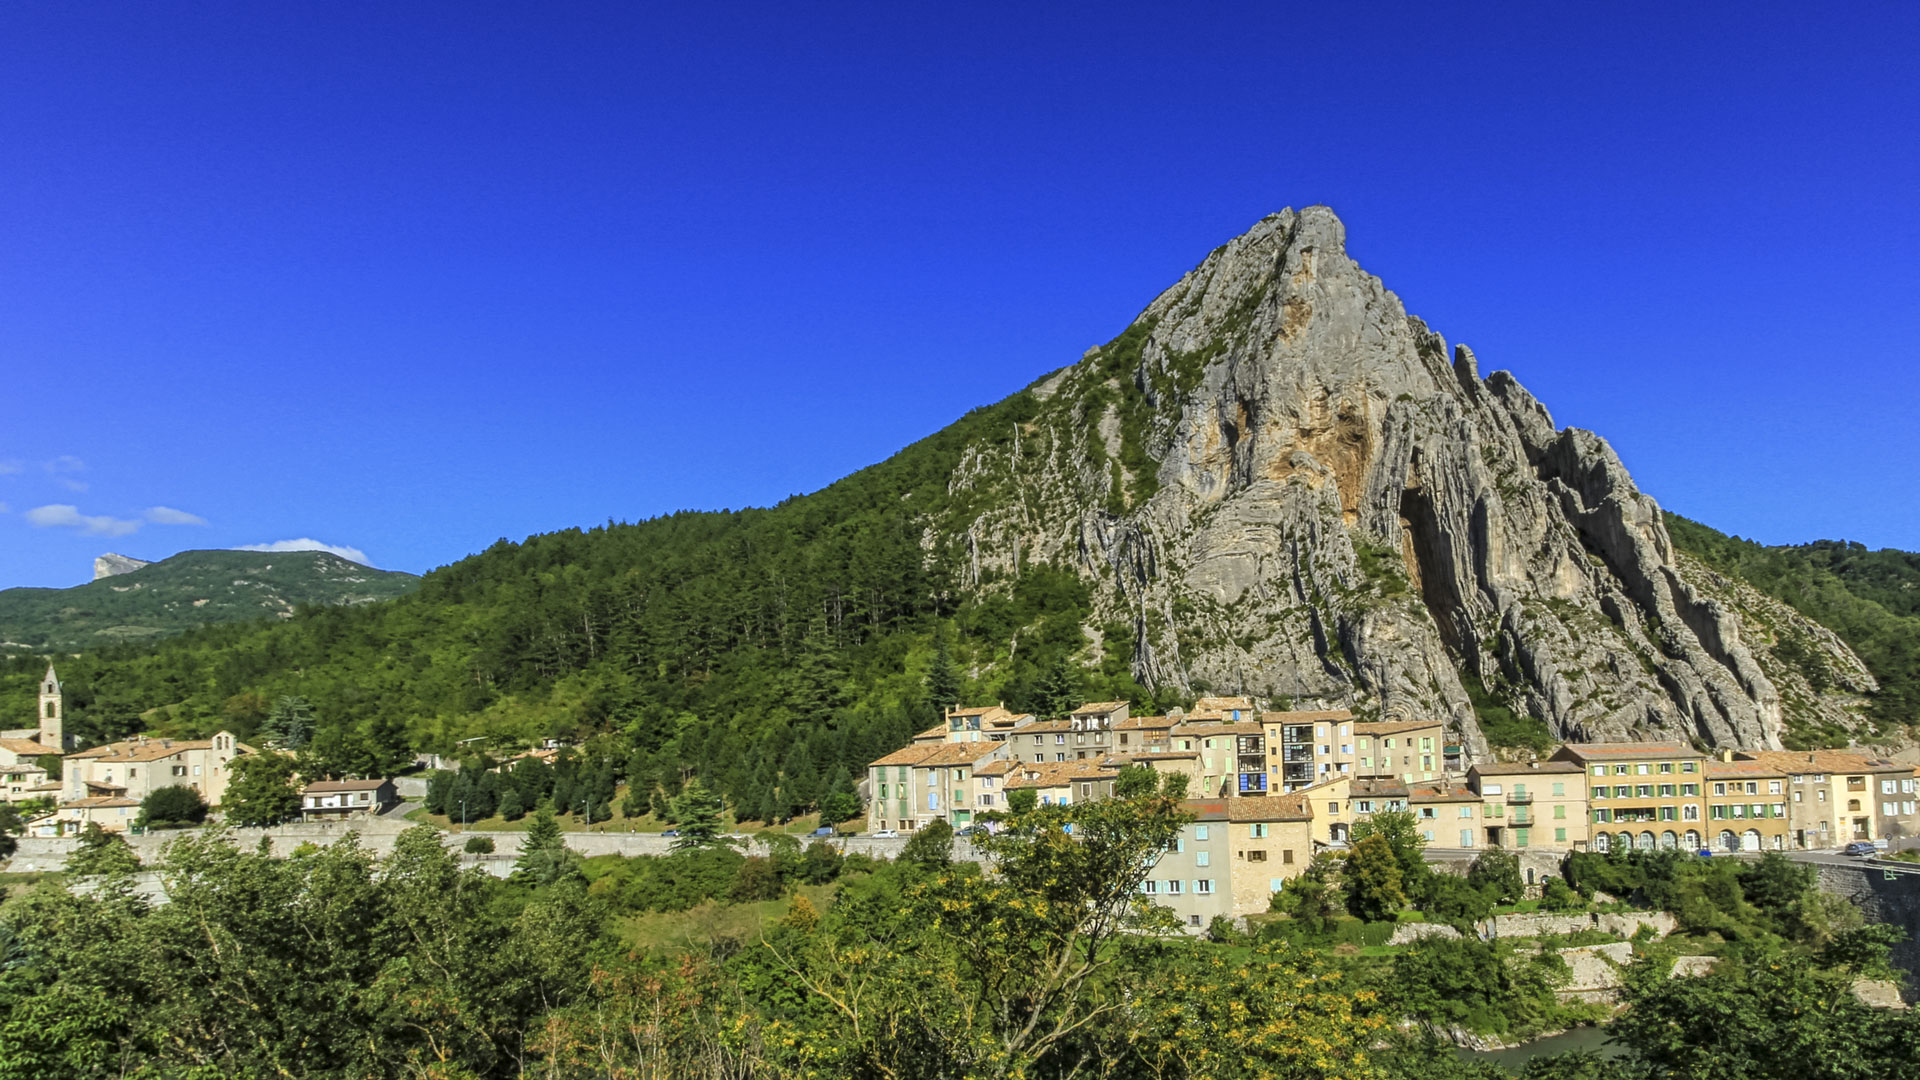 Sisteron city and Beaume big rock, France